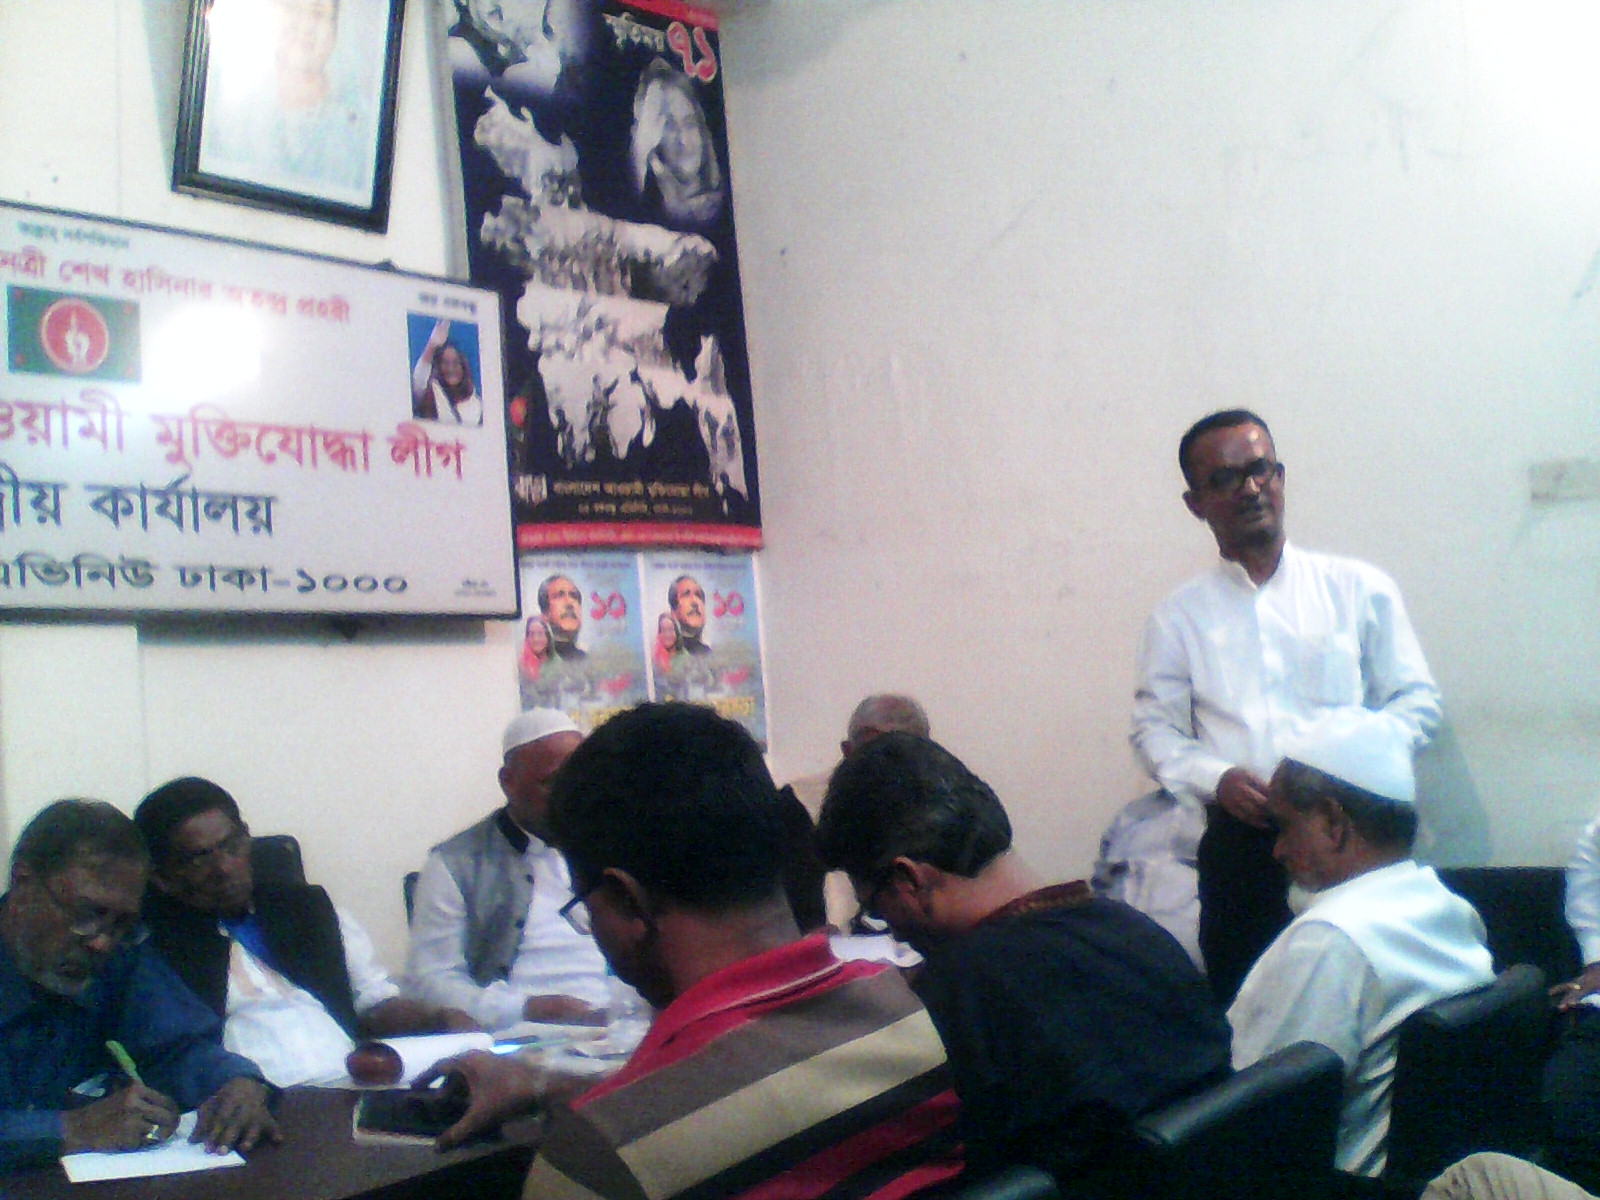 Dr. Kutubuddin Chowdhury is seen to deliver his speech